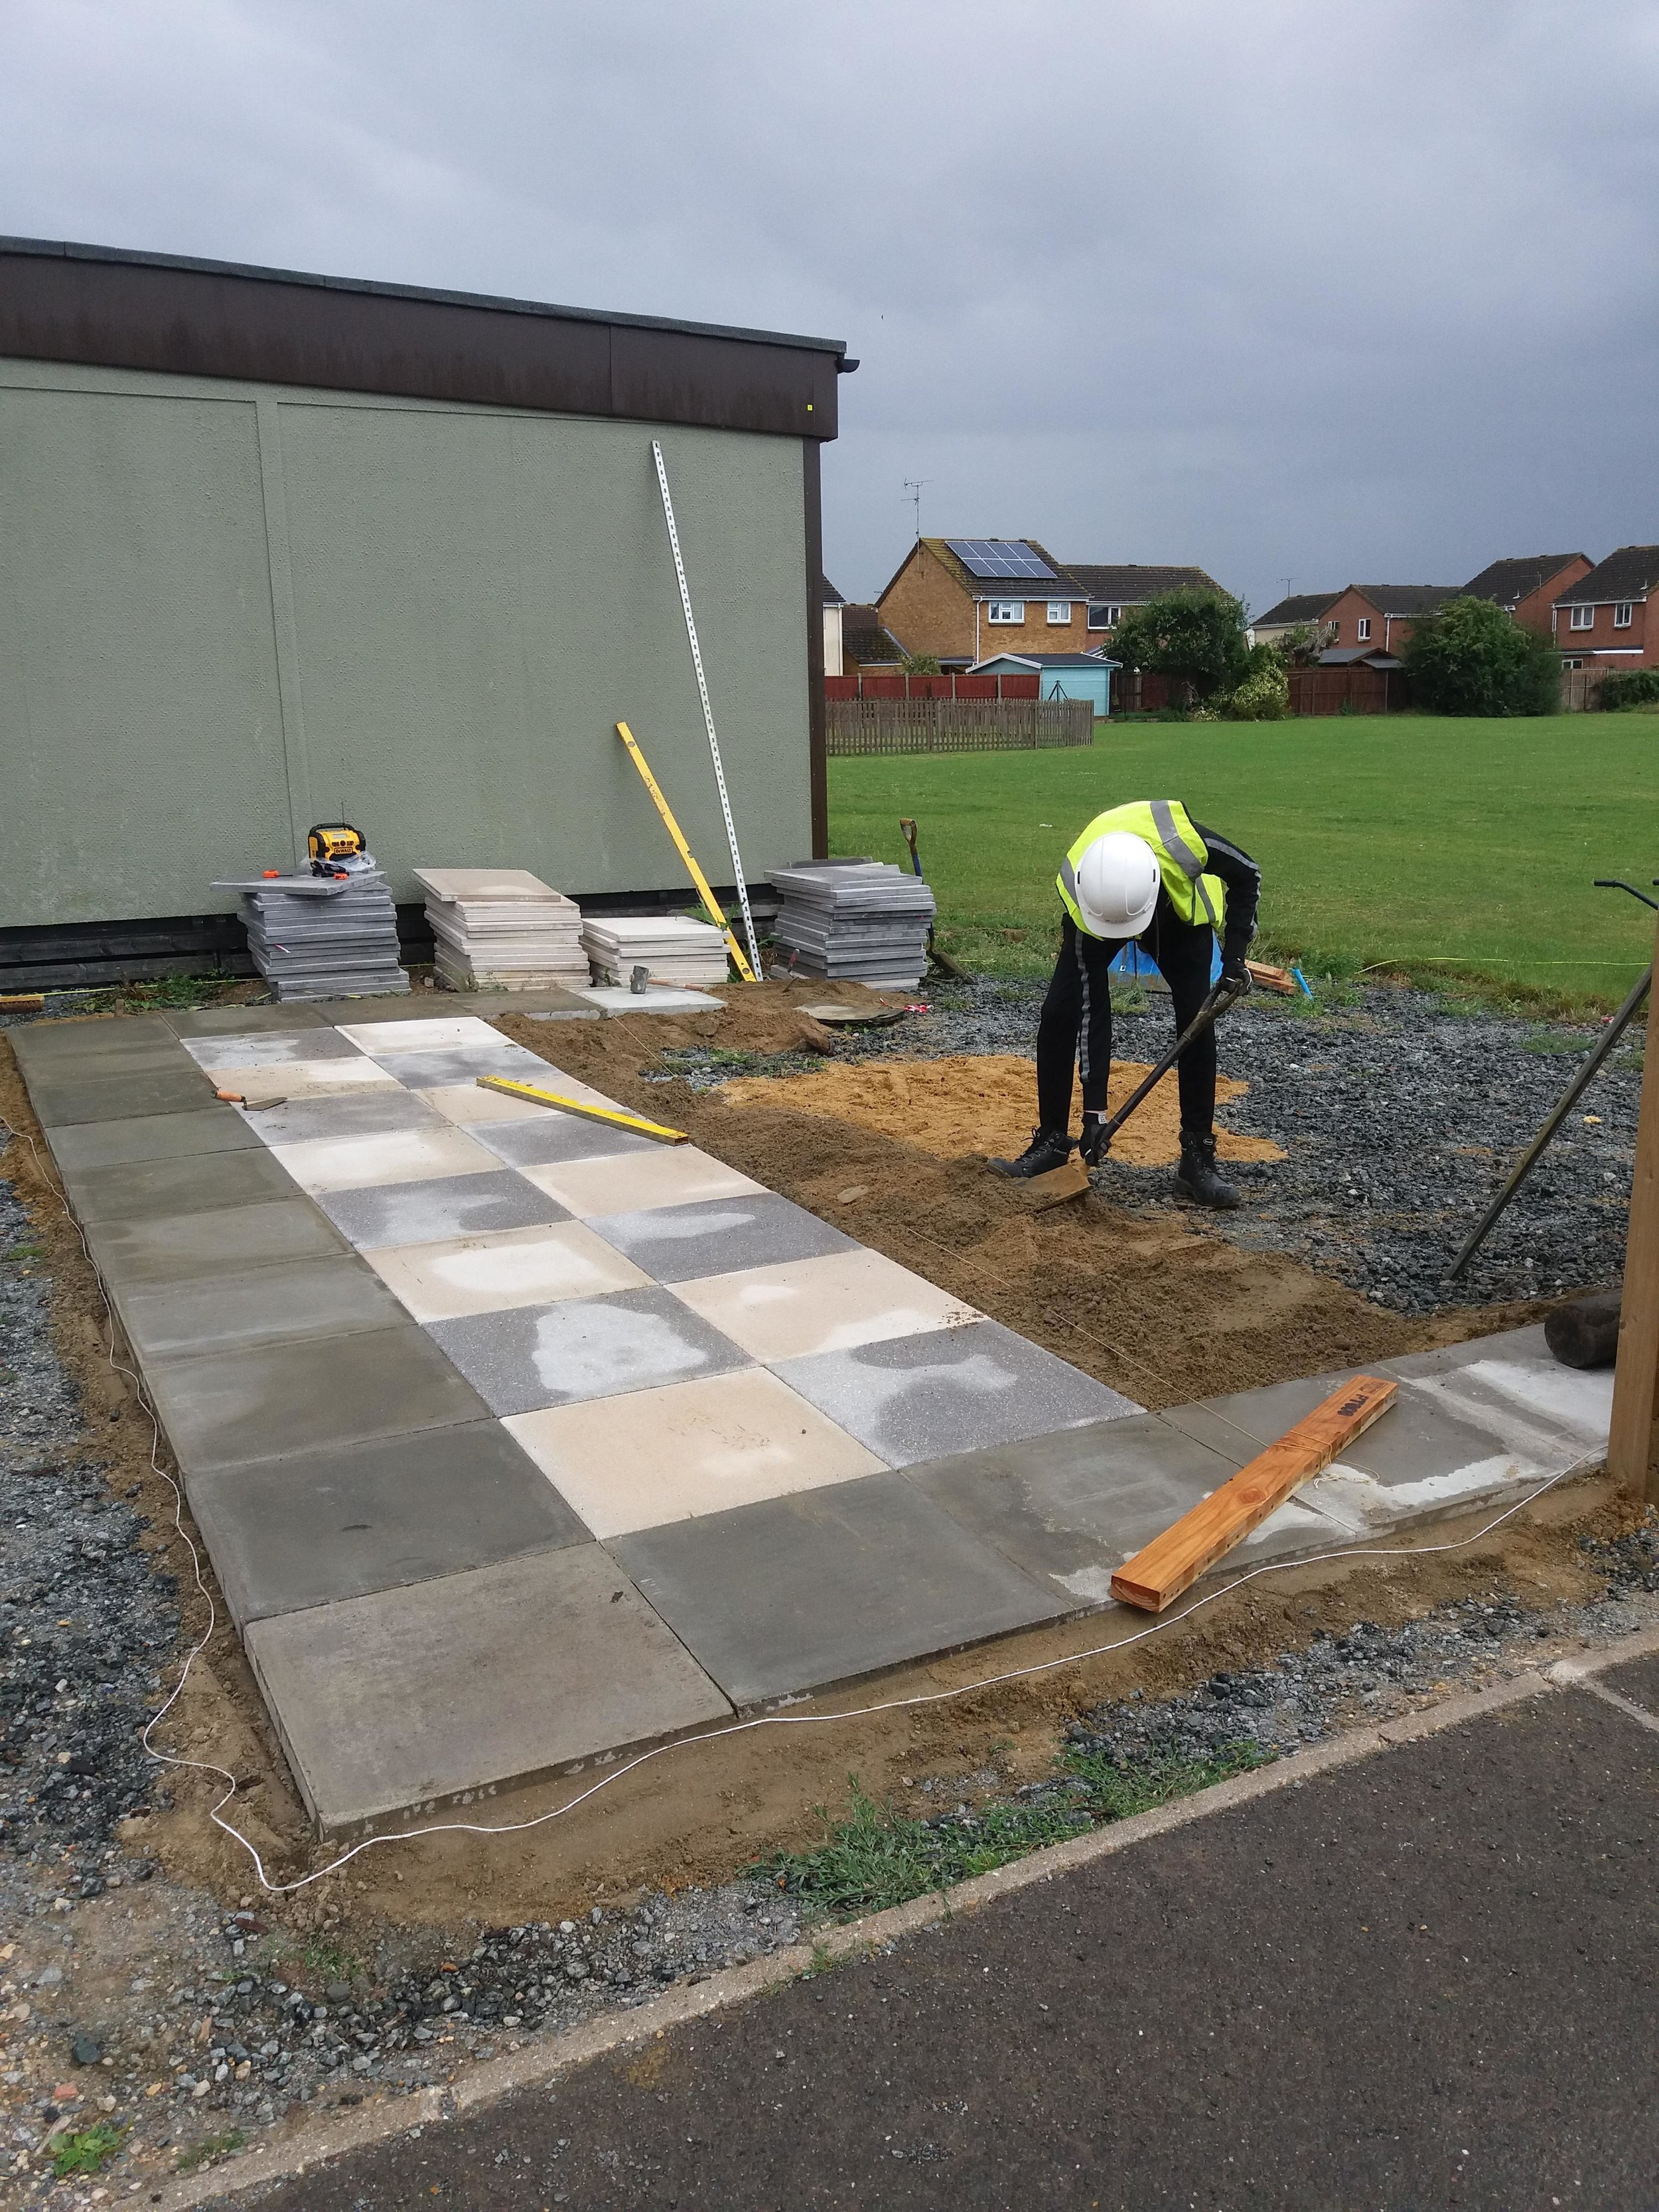 A student putting new-found skills into practice on a work experience project